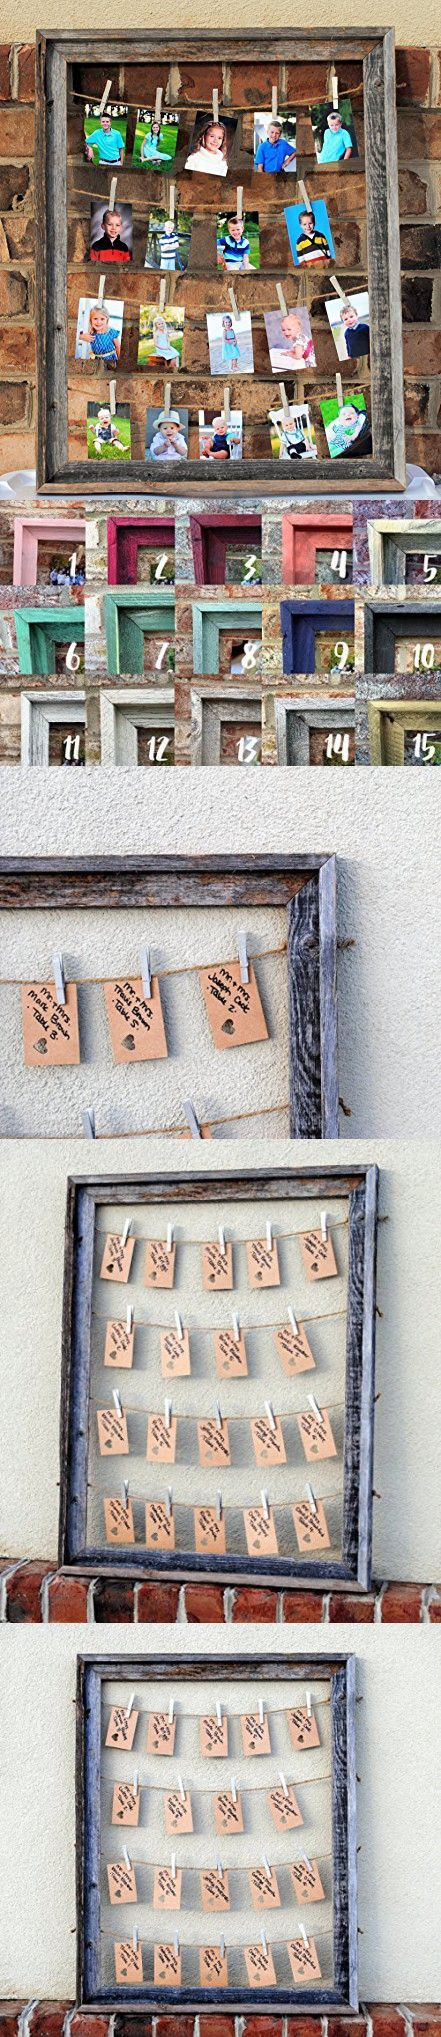 Multiple Picture Frame Barn Wood, Rustic Home Decor, Rustic Wedding Place card Holder, Rustic Wedding Decor, Gift for Grandpa, Mother's Day Gift for Grandma, Gift for Mom and Dad, Rustic Frame